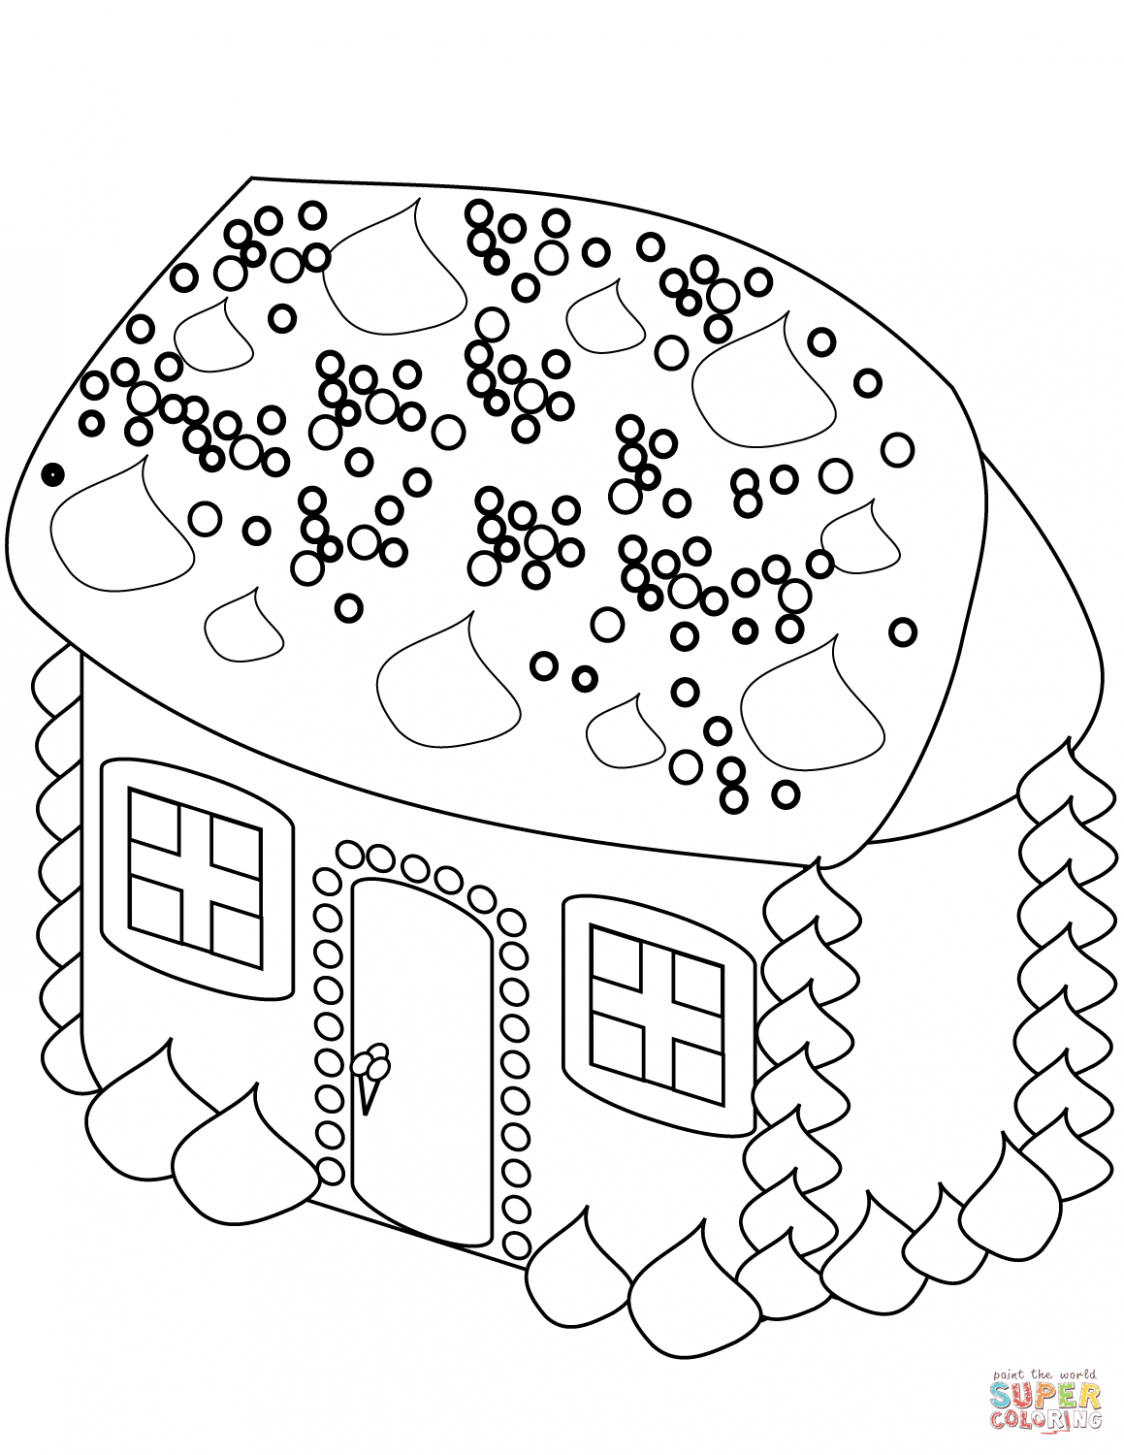 Gingerbread House coloring page | Free Printable Coloring Pages – Christmas Coloring Pages Gingerbread House